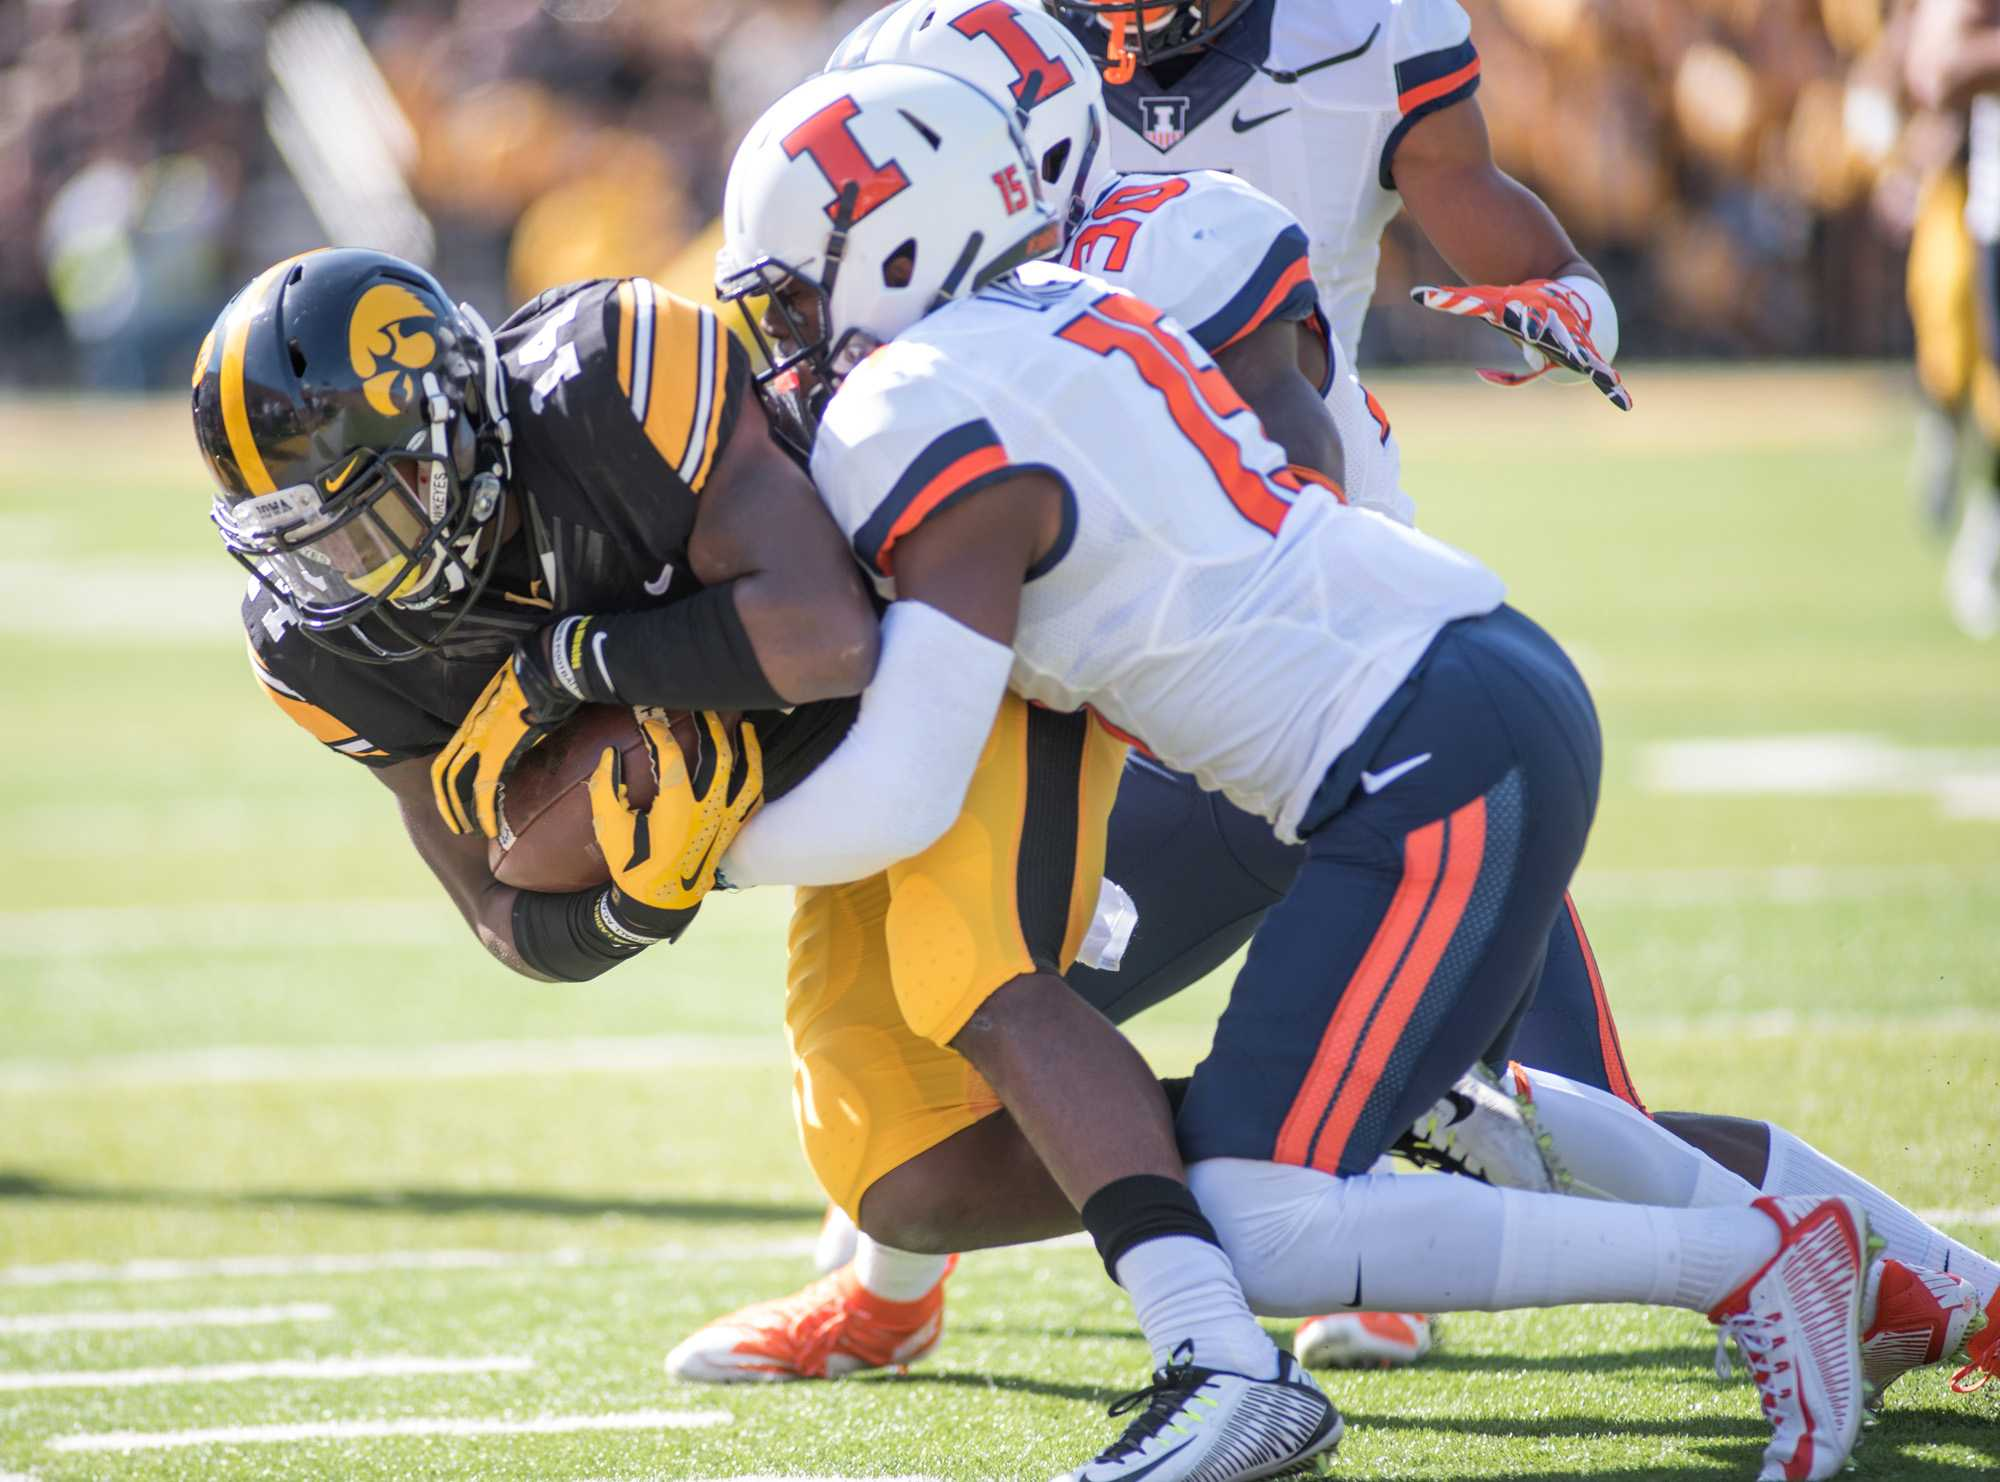 The+Hawkeyes+are+undefeated+and+cruising+to+the+Big+Ten+West+division+title.+It+is+now+time+to+realistically+consider+their+chances+for+the+College+Football+Playoff%2C+despite+legitimate+concerns+about+their+strength+of+schedule.